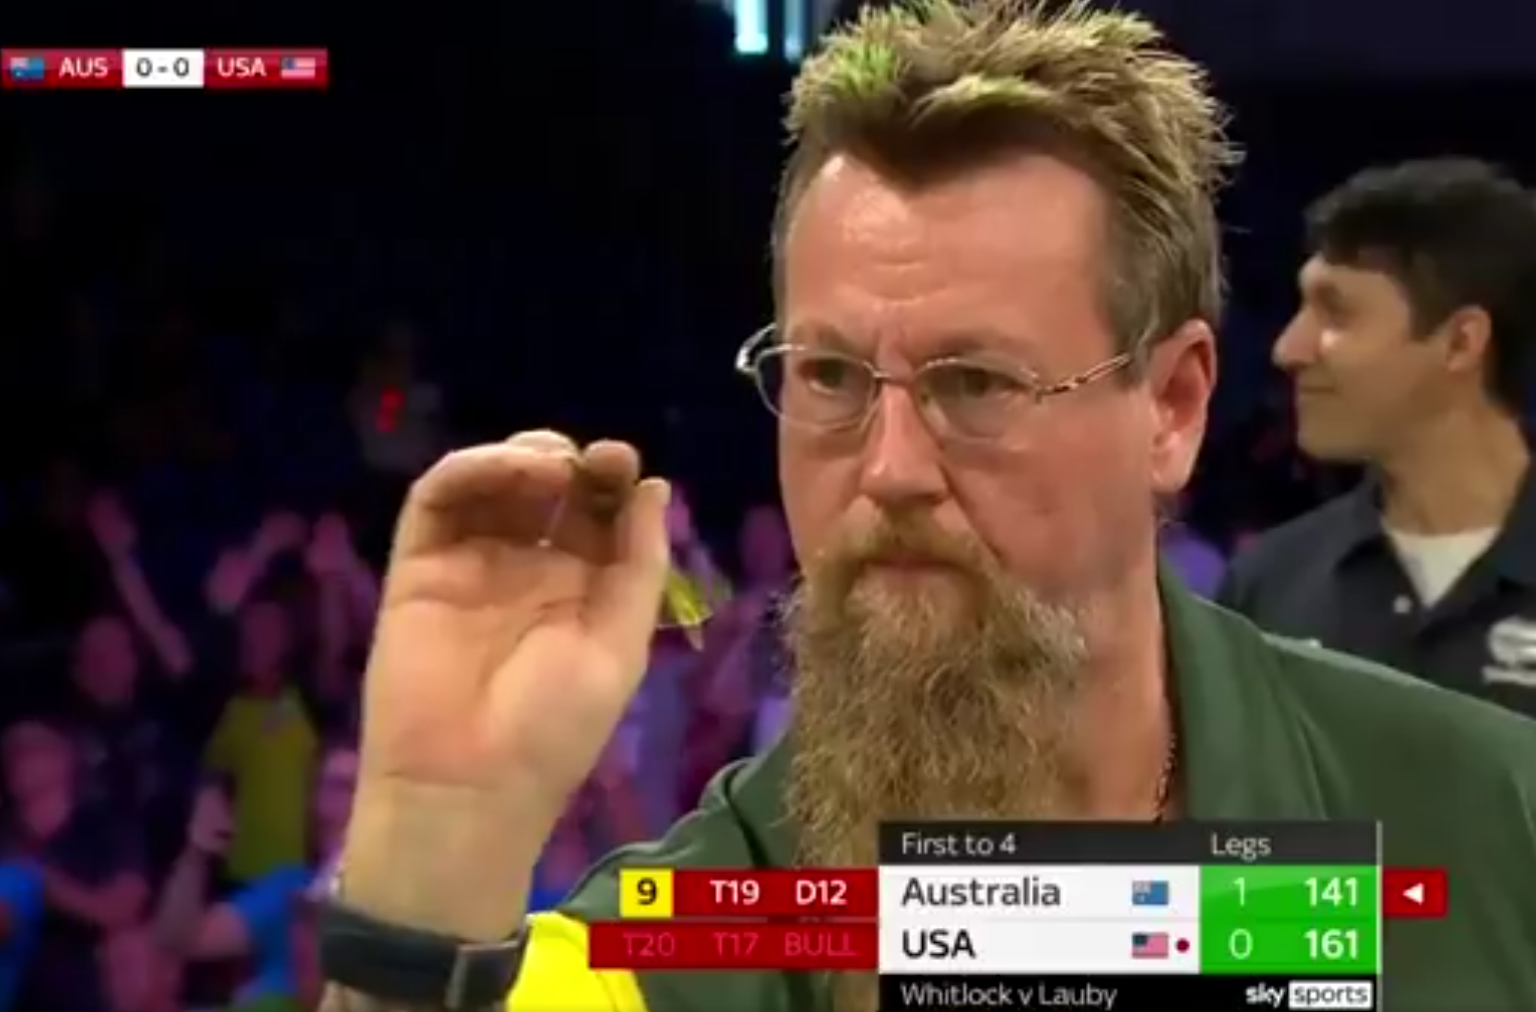 VIDEO: Australia's 9-Darter Attempt At World Cup of Darts 2021